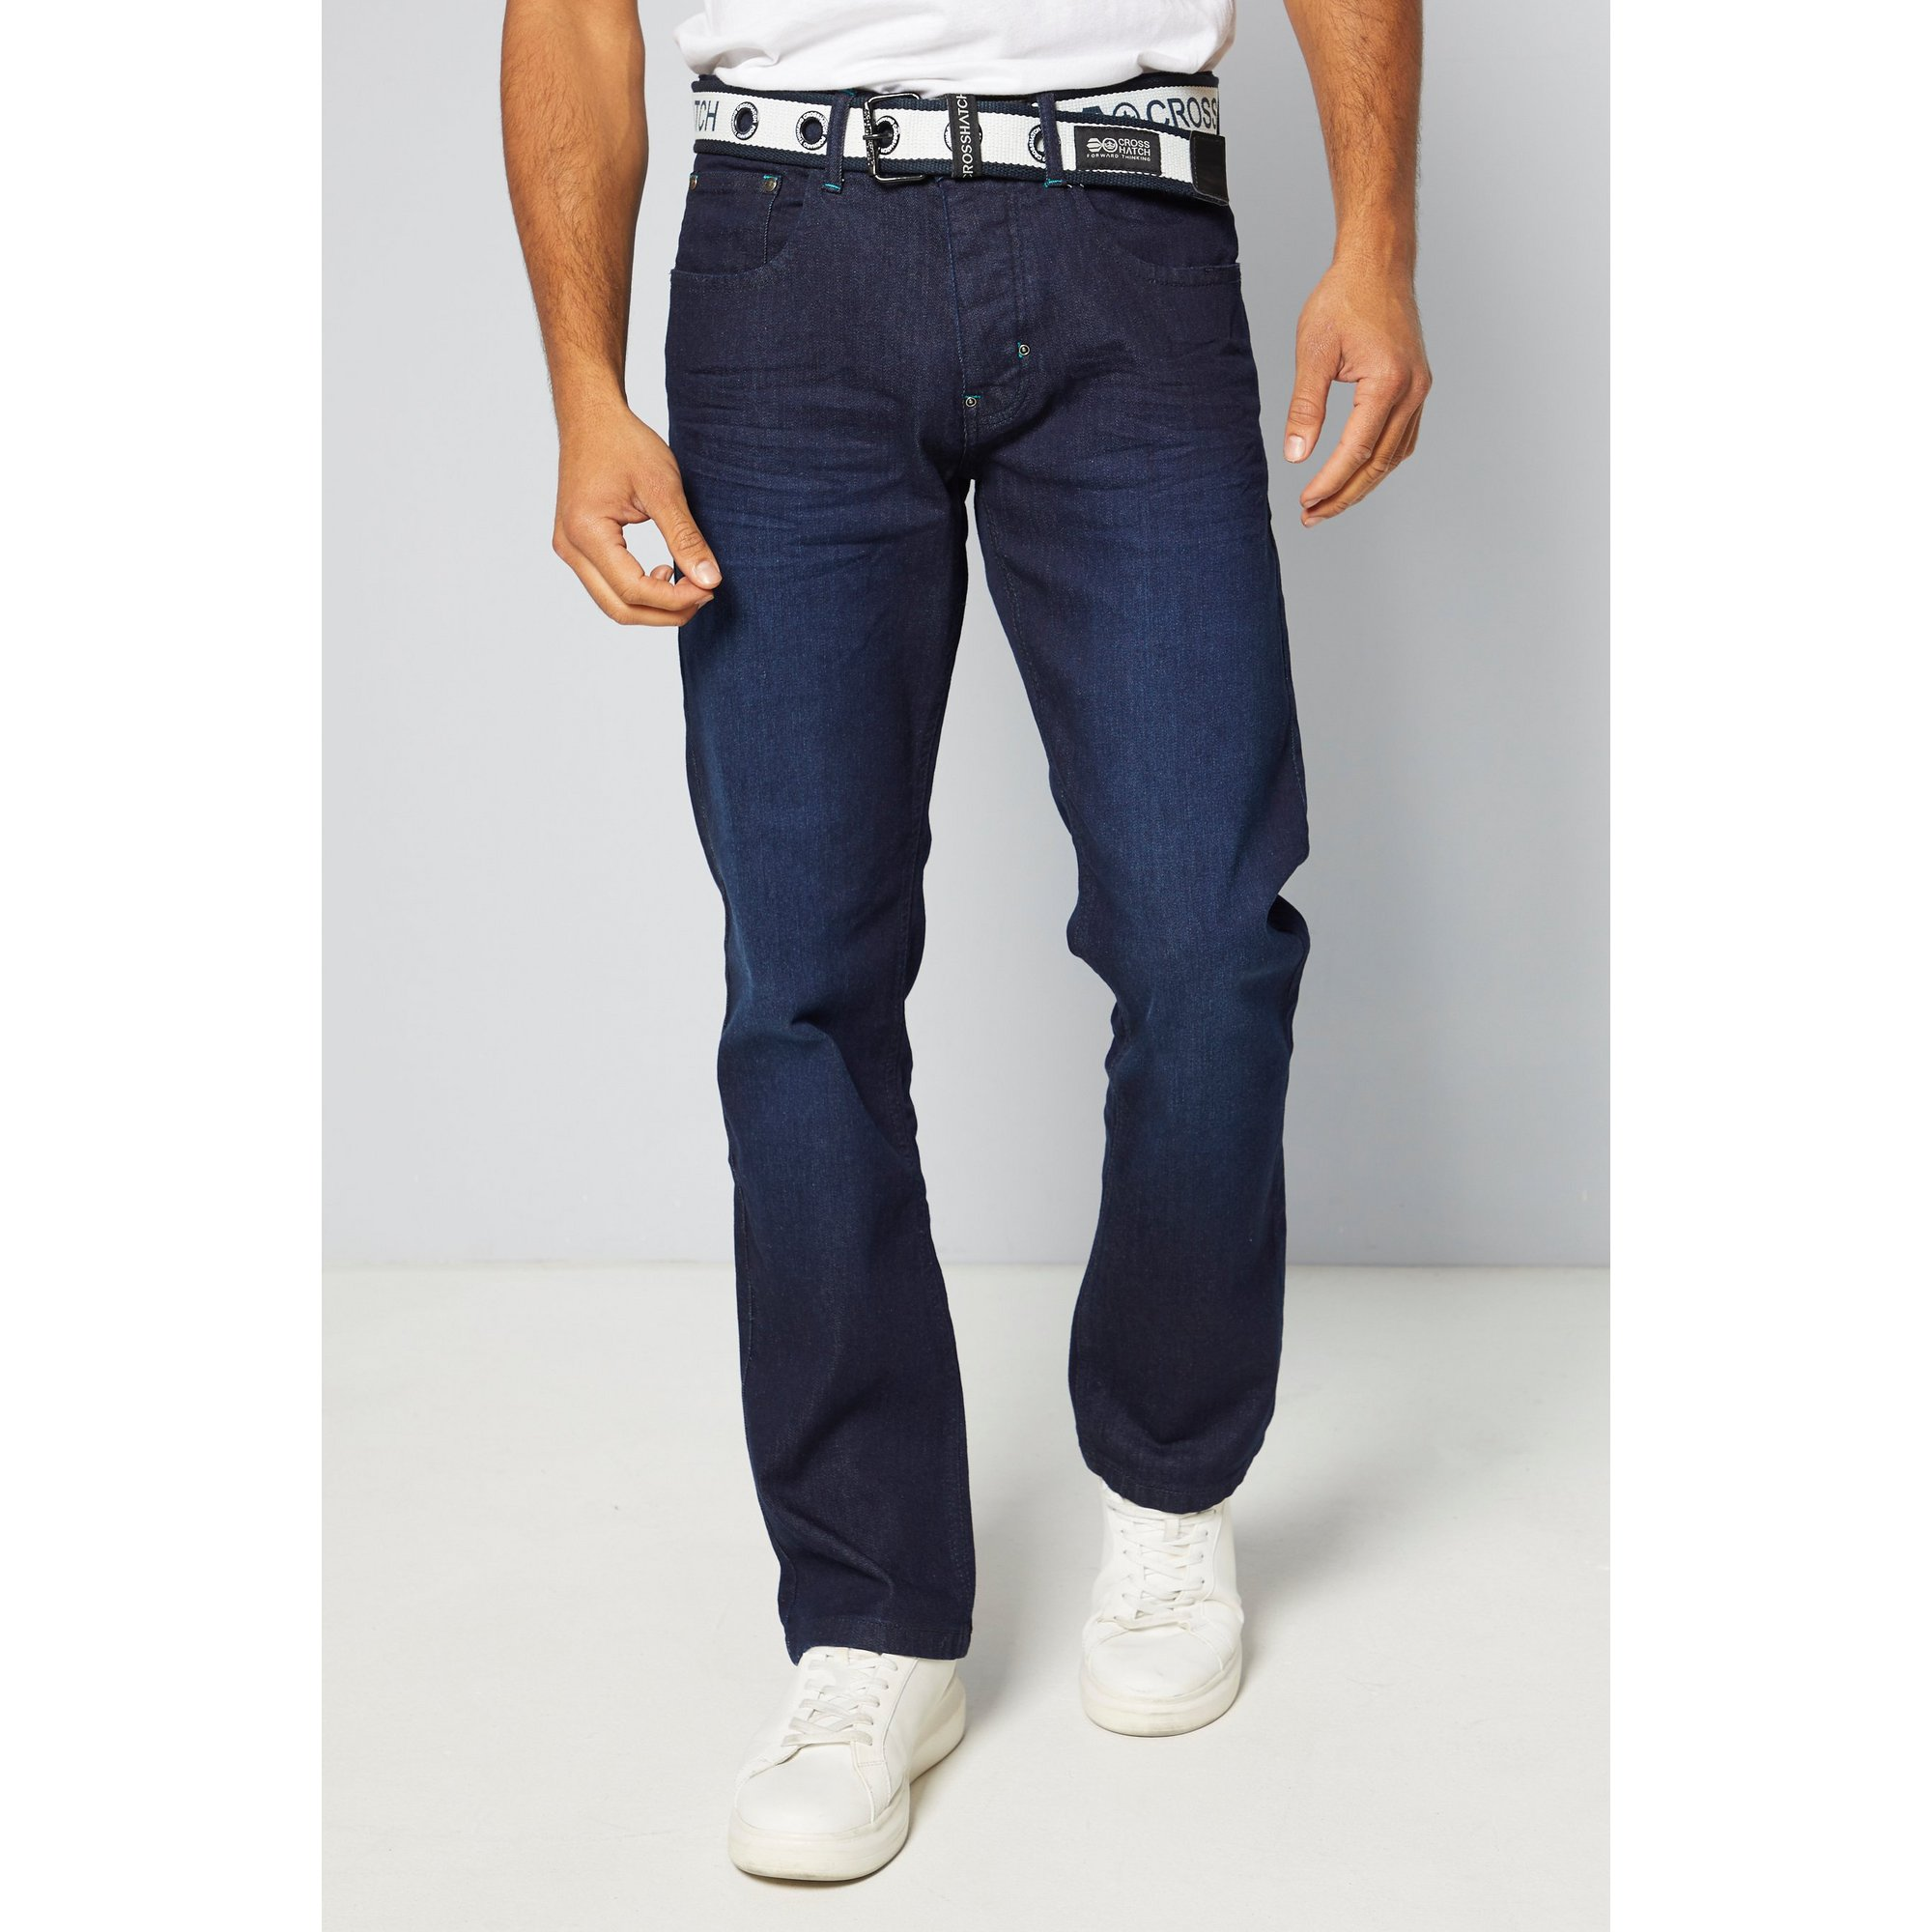 Image of Crosshatch Belted Tapered Fit Jeans